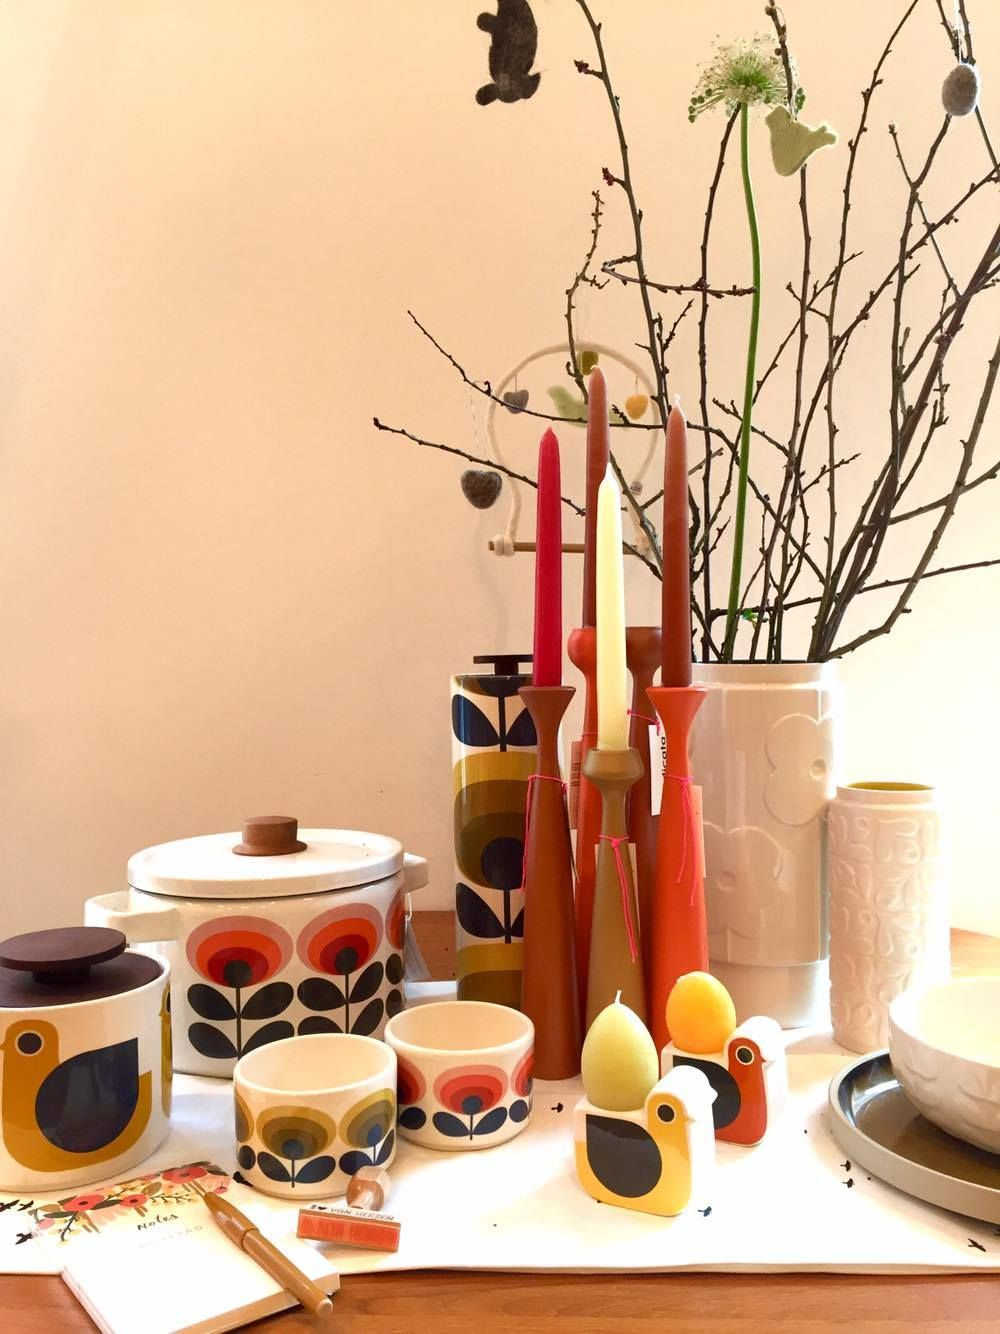 Perfect #Easter table #dishes and #decoration available in our shop, have a Look at https://www.goodshaus.com/Orla-Kiely_2